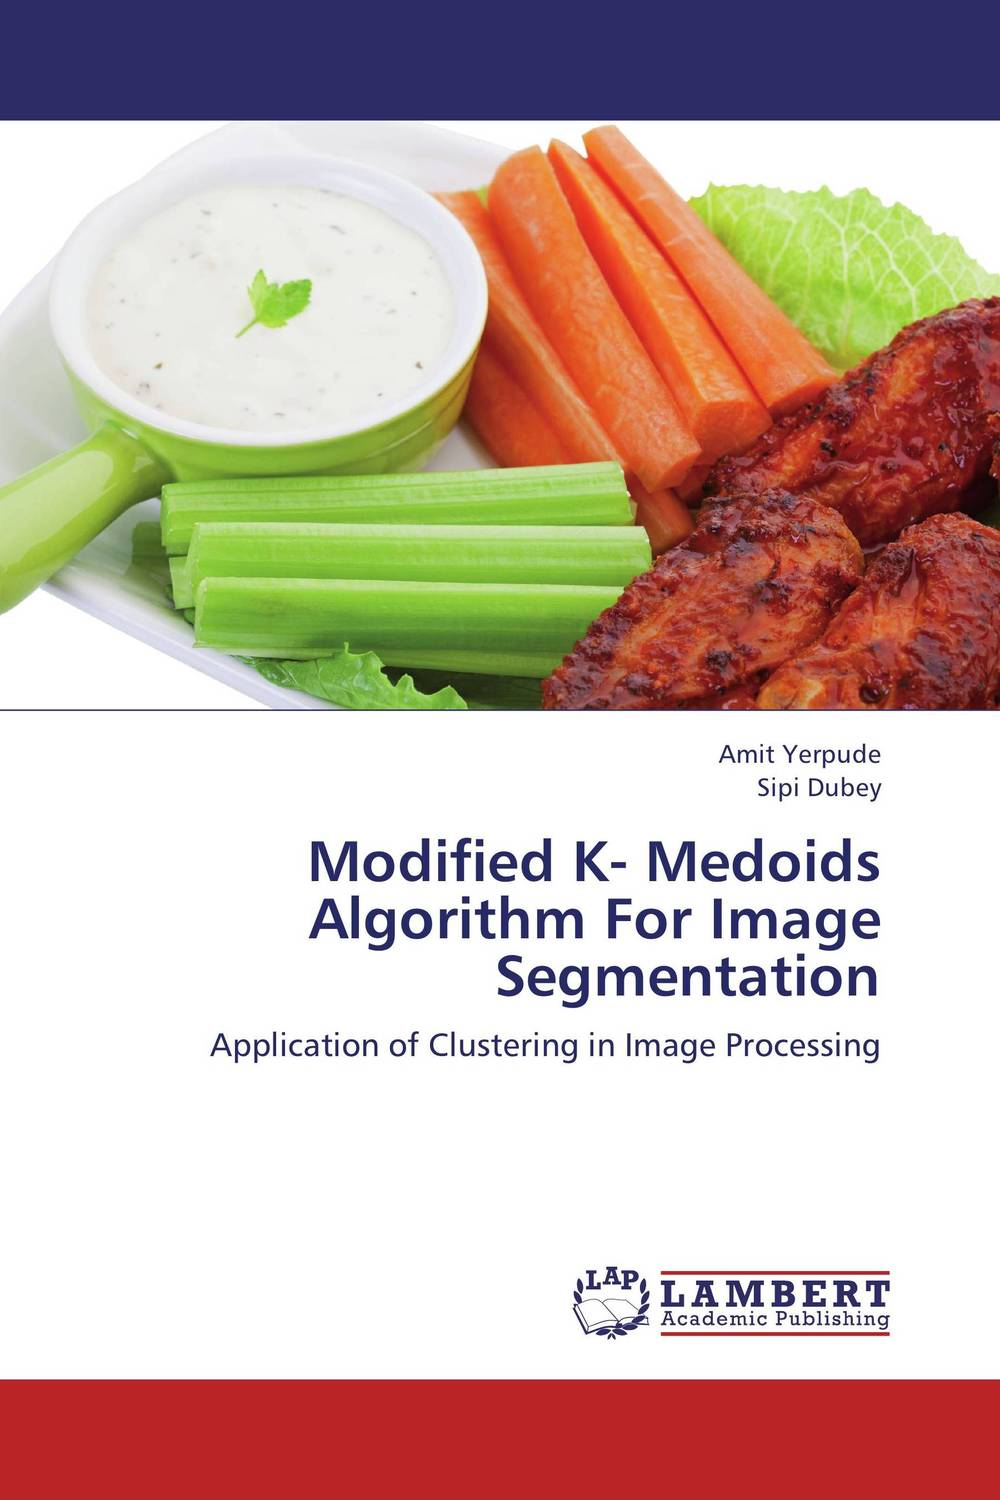 купить Modified K- Medoids Algorithm For Image Segmentation недорого